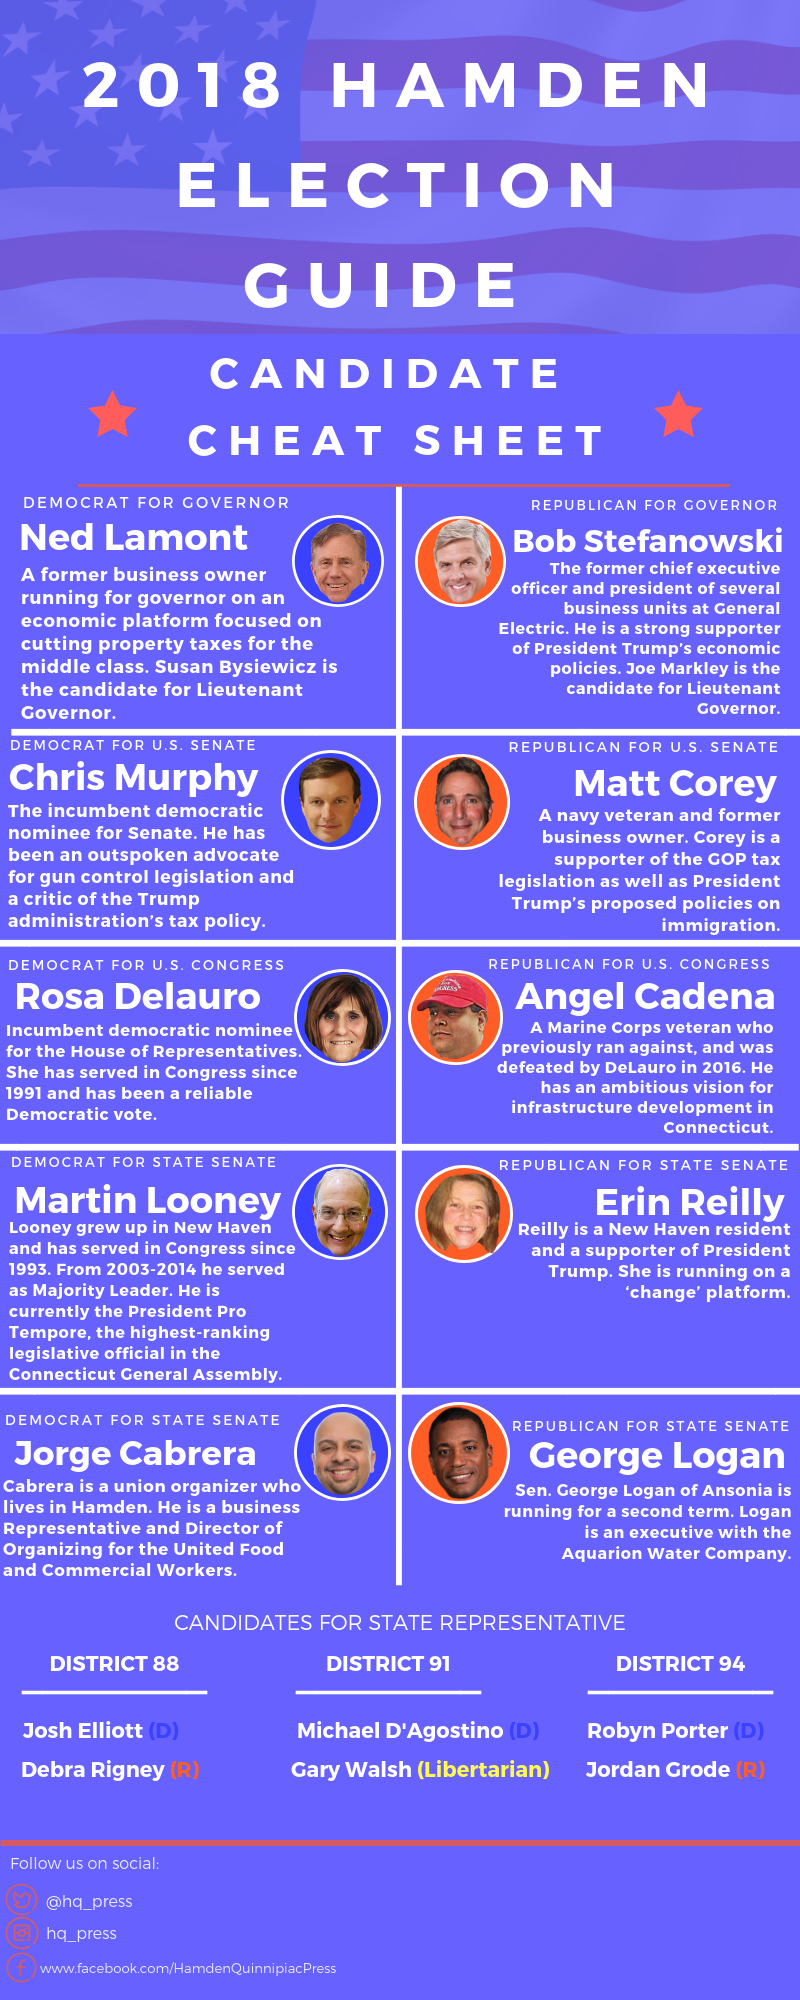 Here is a simple guide to learn more about the candidates.